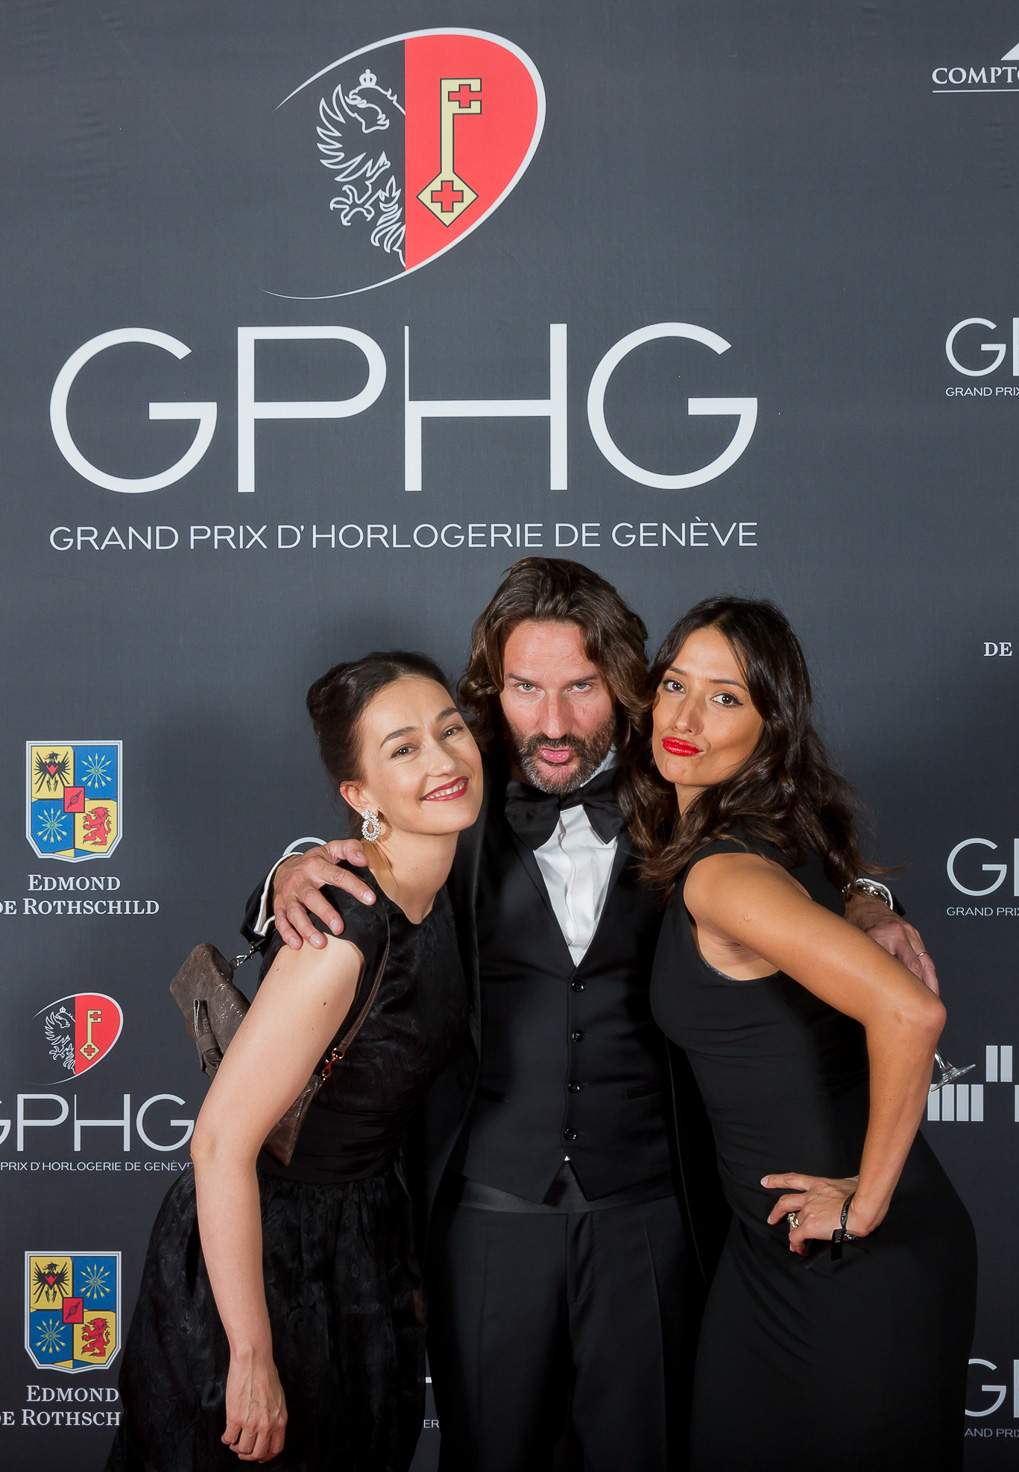 Carine (Director of the Foundation of the GPHG), Frédéric Beigbeder and Melanie Winiger (MCs of the prize-giving ceremony of the GPHG 2014)